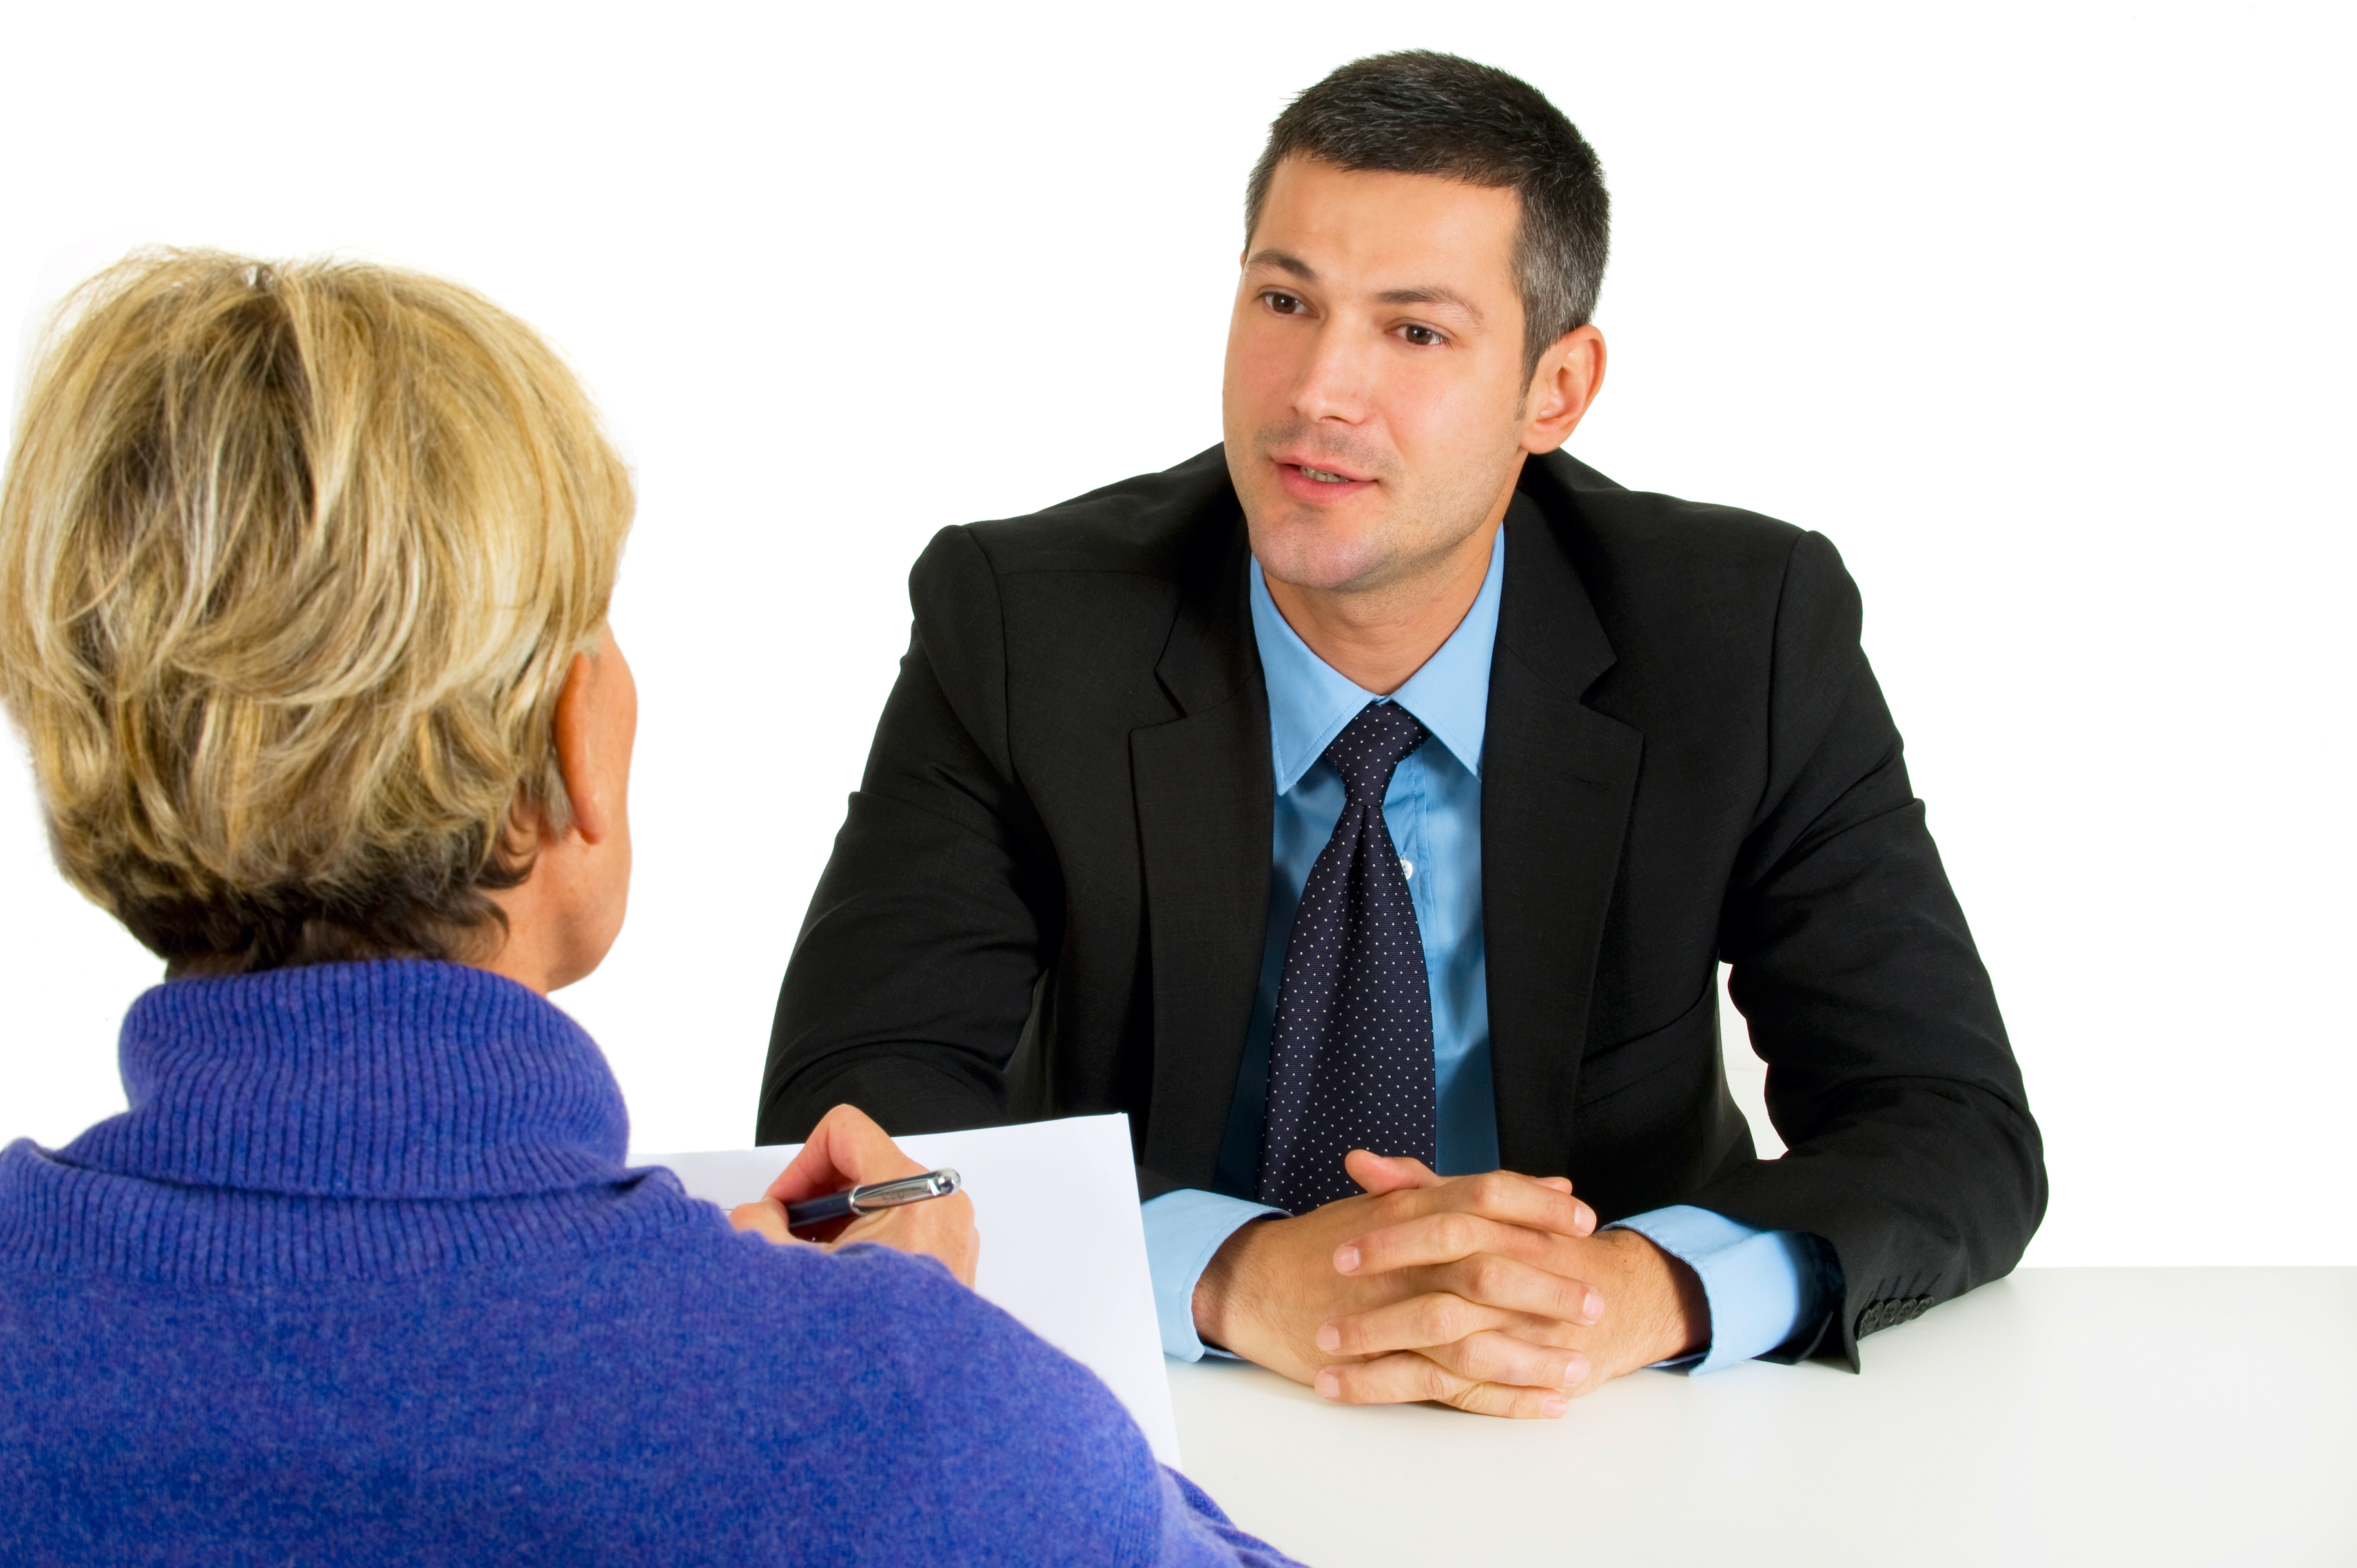 How Important is Body Language During an Interview?